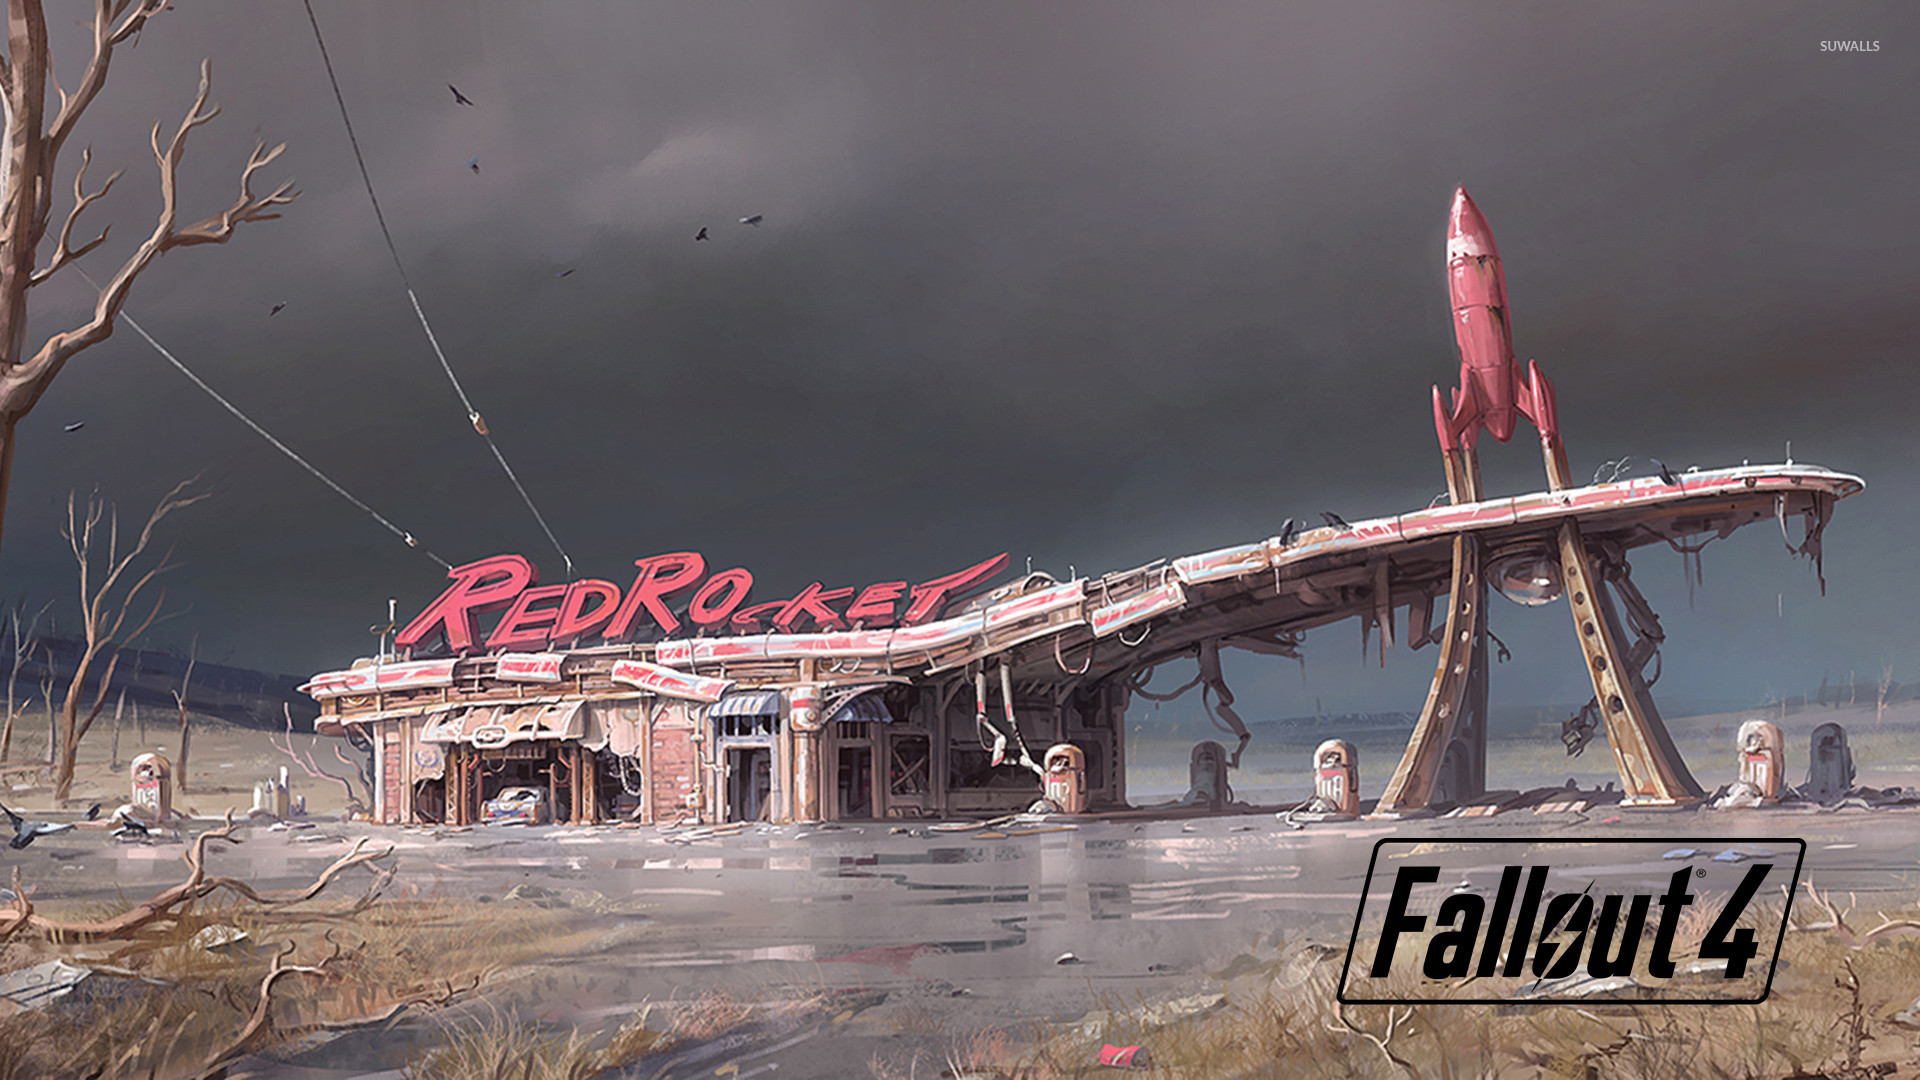 Fallout 4 Wallpaper 1920x1080 (77+ images)